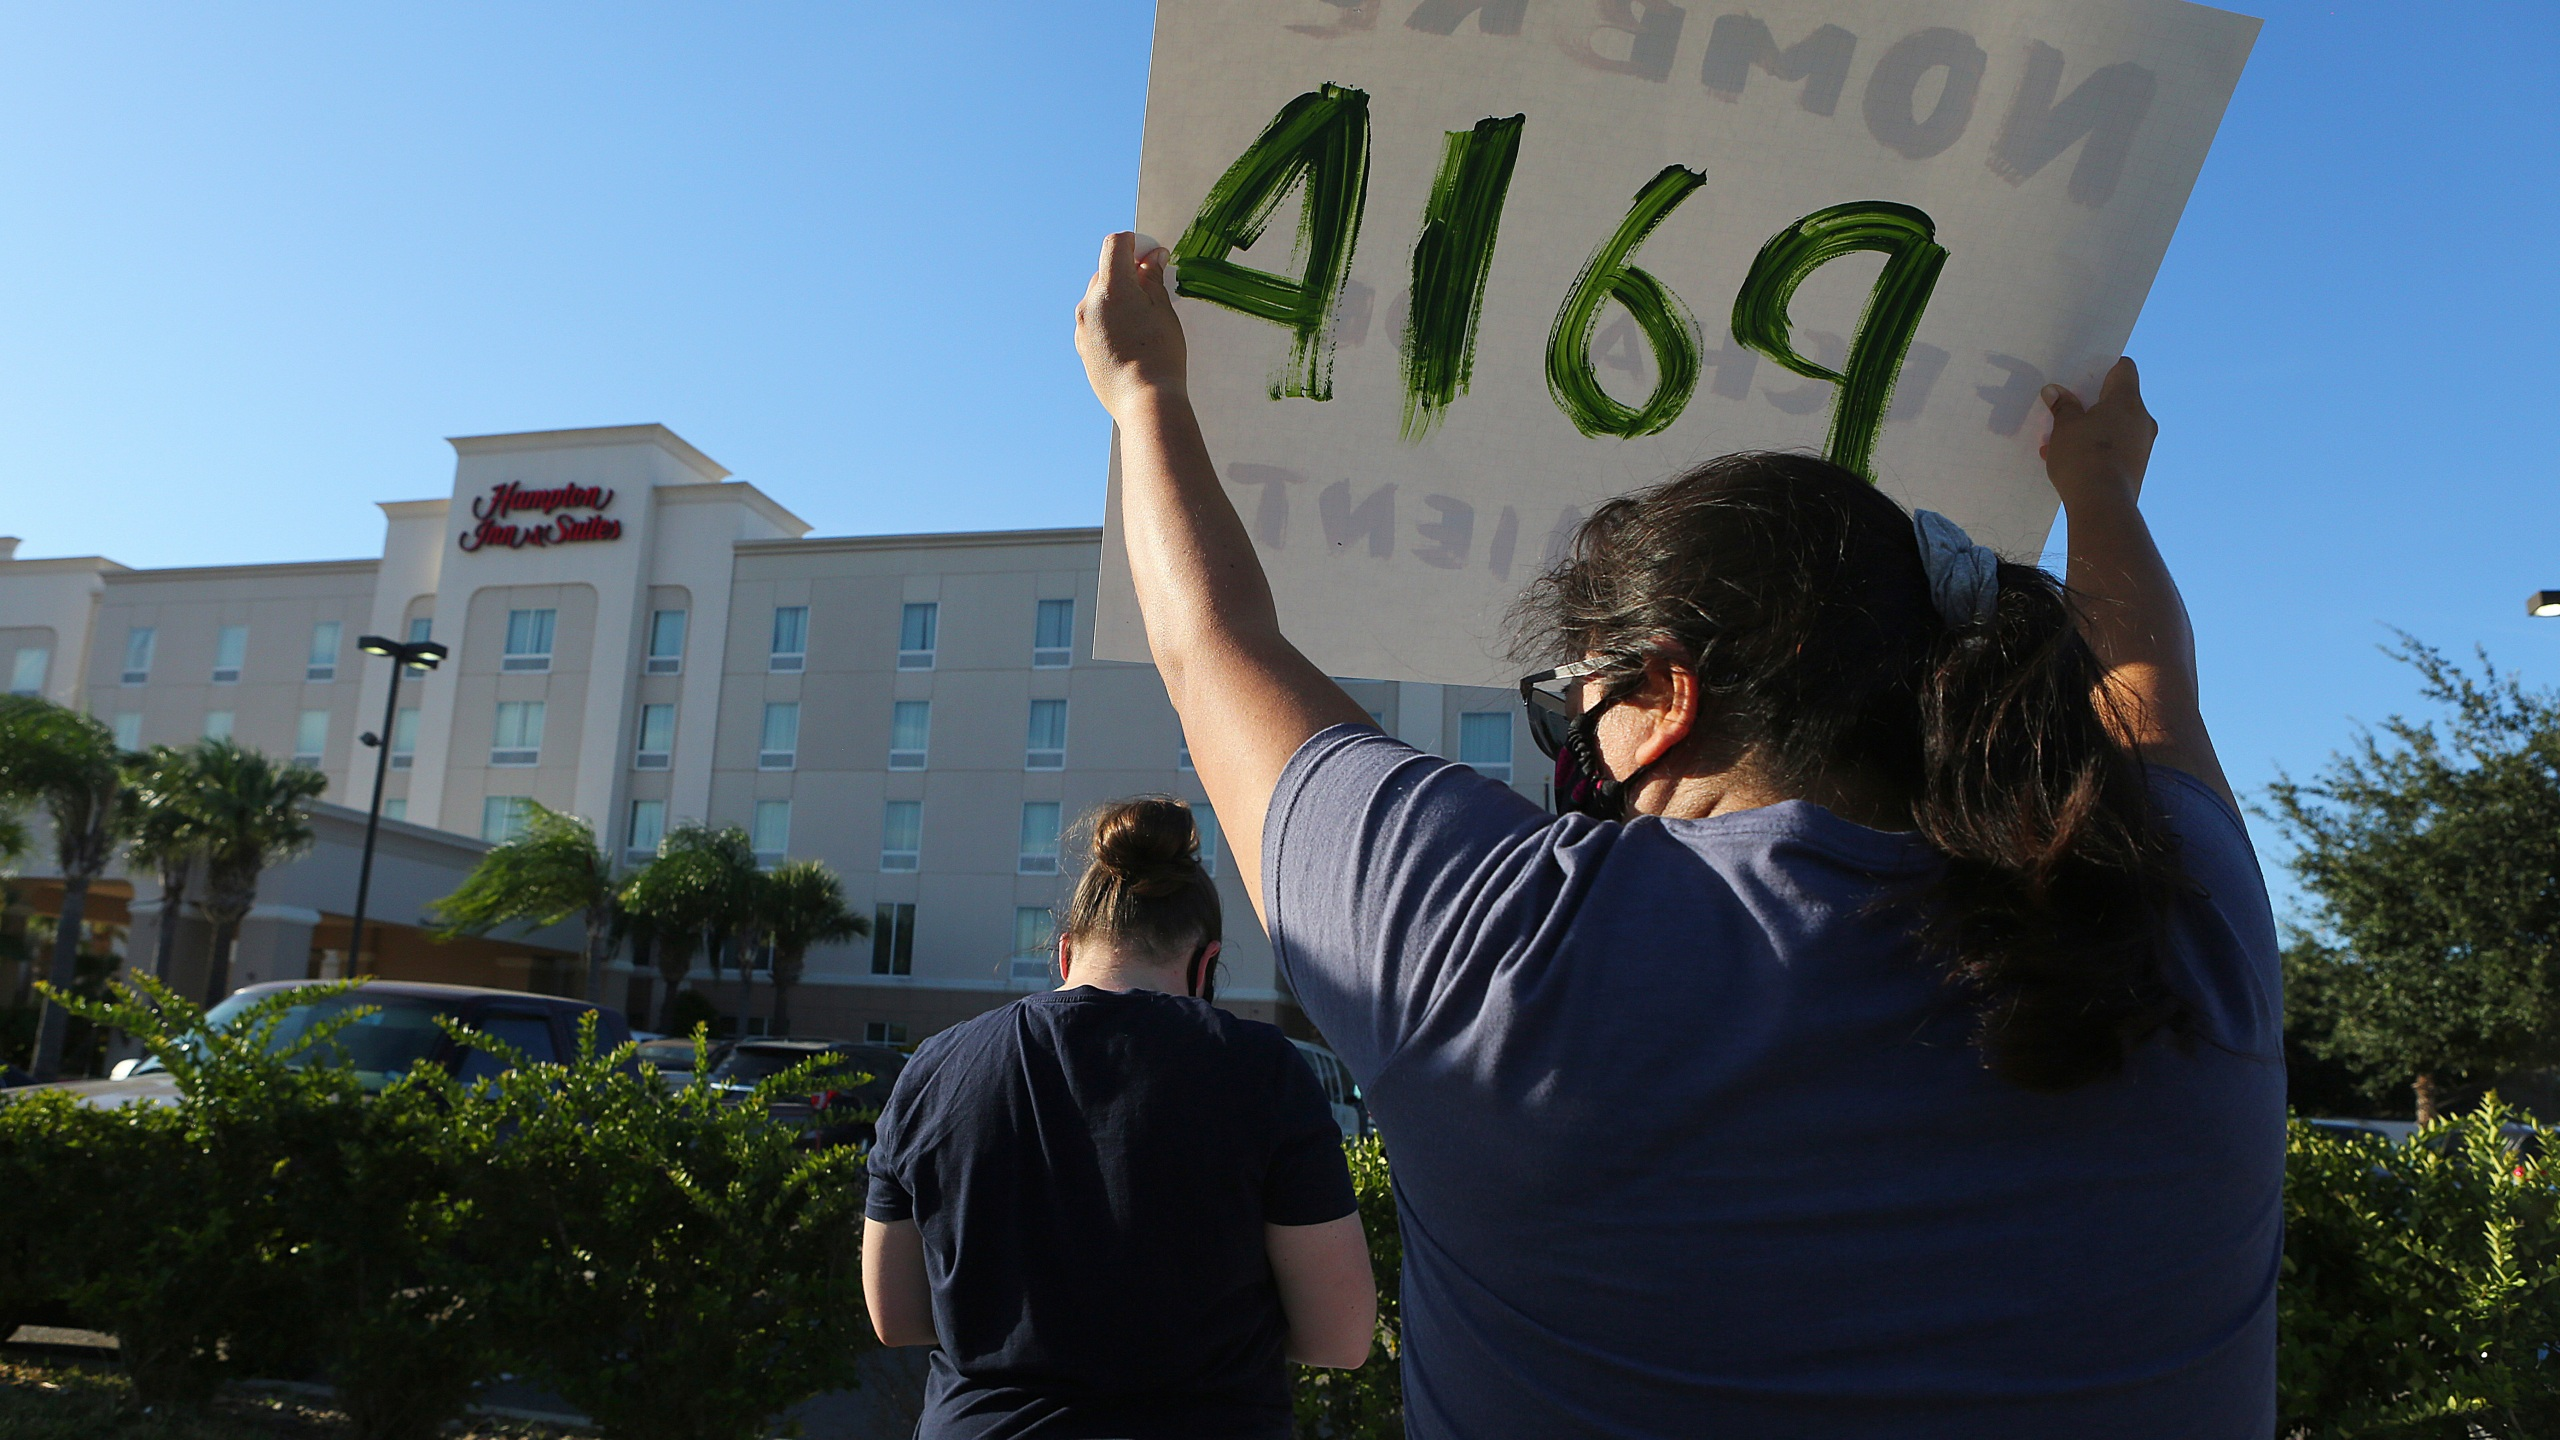 FILE - In this July 23, 2020, file photo, protesters wave signs in front of the Hampton Inn hotel in McAllen, Texas. The Trump administration has sharply increased its use of hotels to detain immigrant children as young as 1 before expelling them from the United States during the coronavirus pandemic despite facing outcry from lawmakers and human-rights advocates. (Joel Martinez/The Monitor via AP, File)